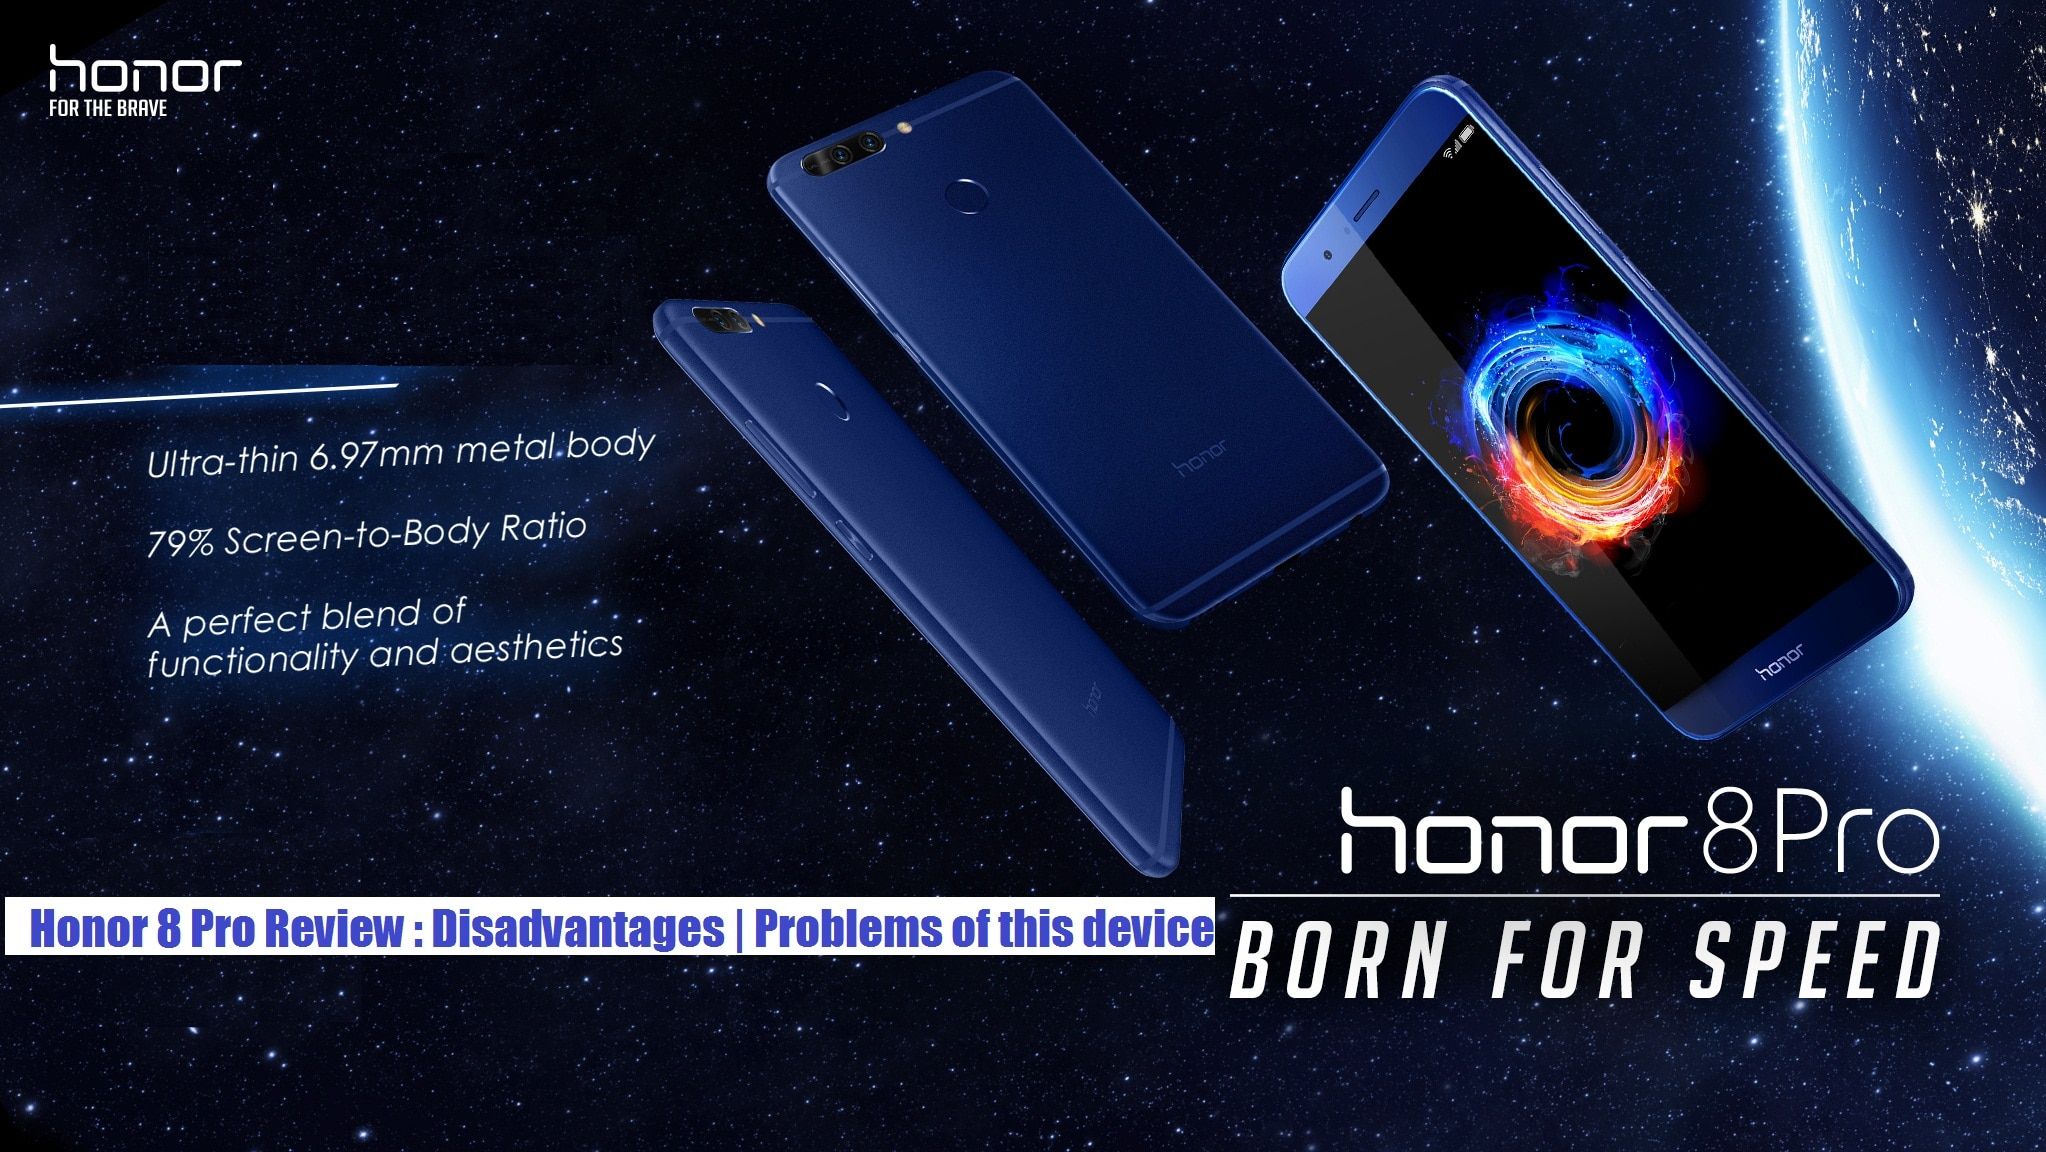 Honor-8-Pro-review-disadvantages-problems